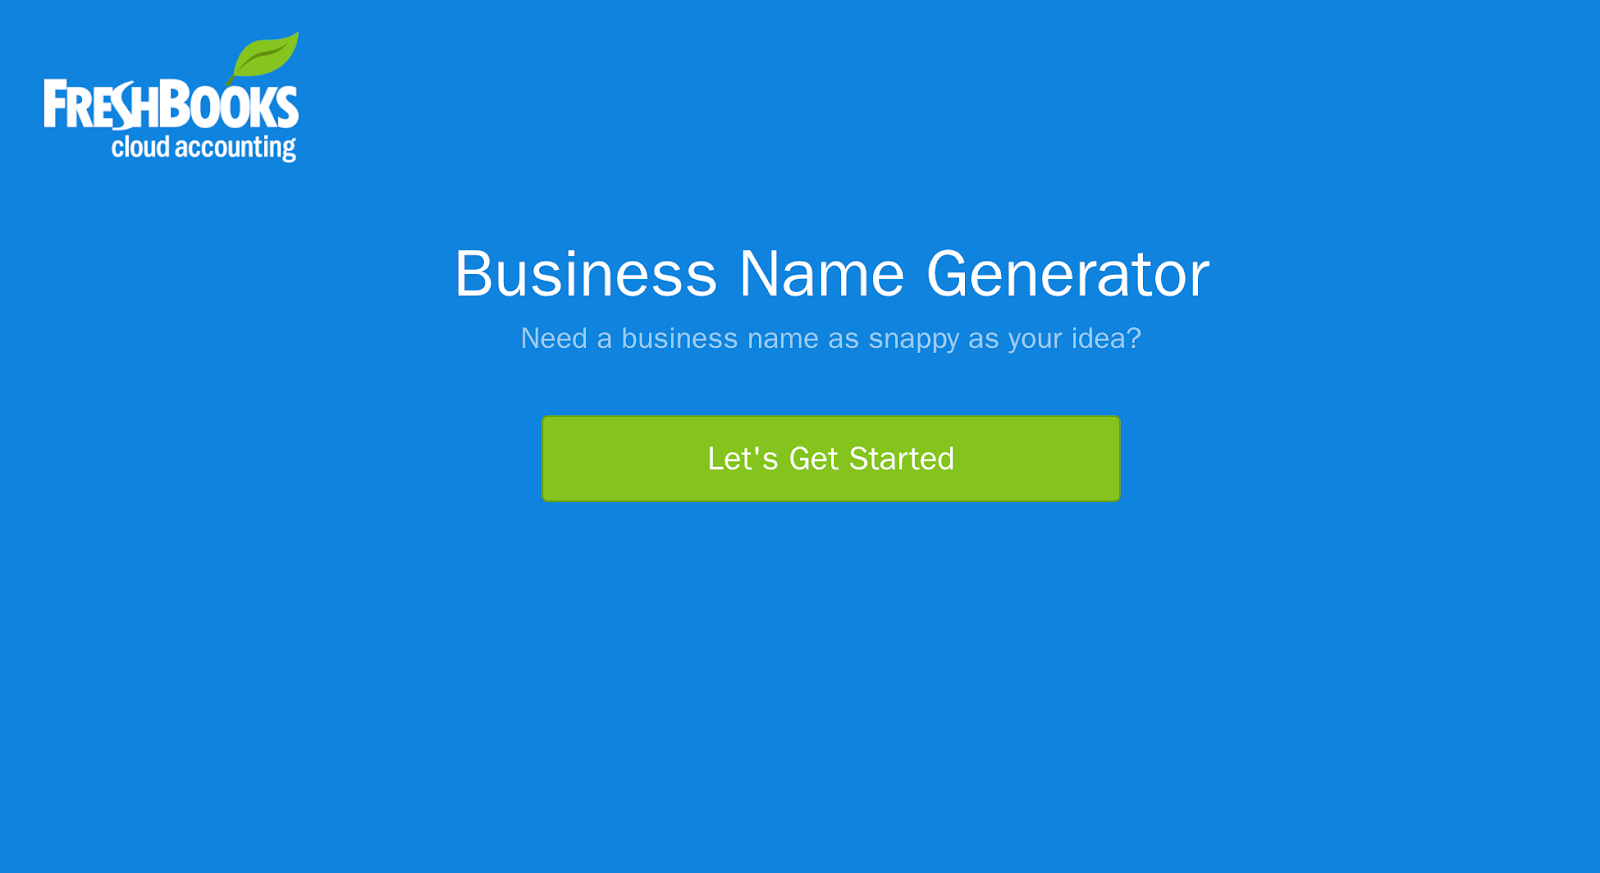 Freshbooks business name generator